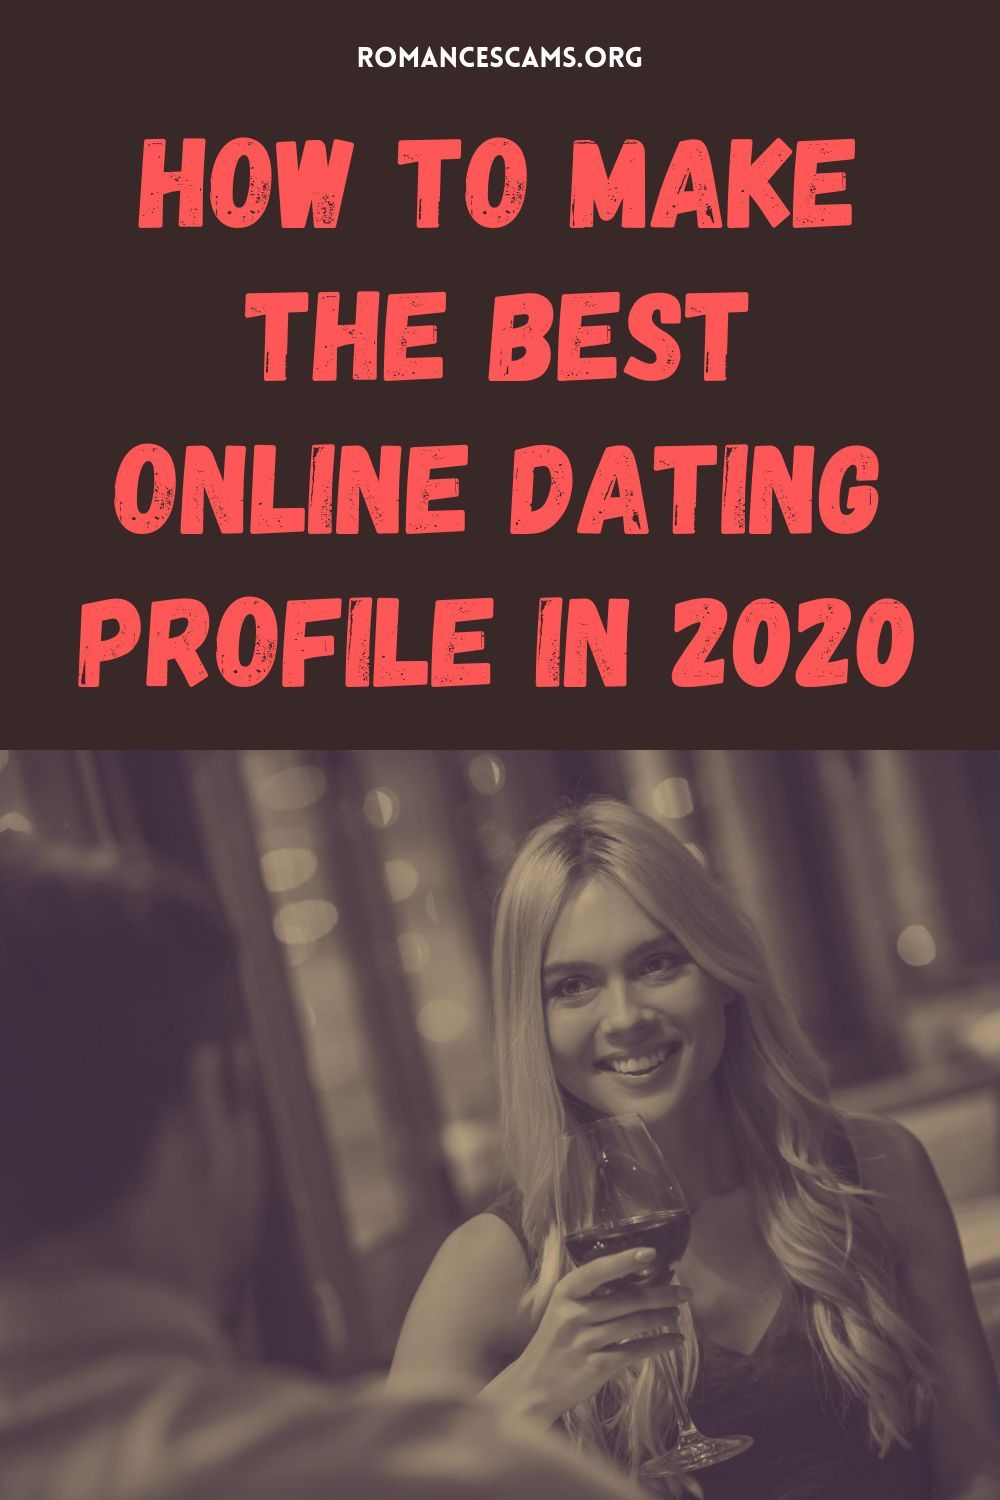 The best online dating profile